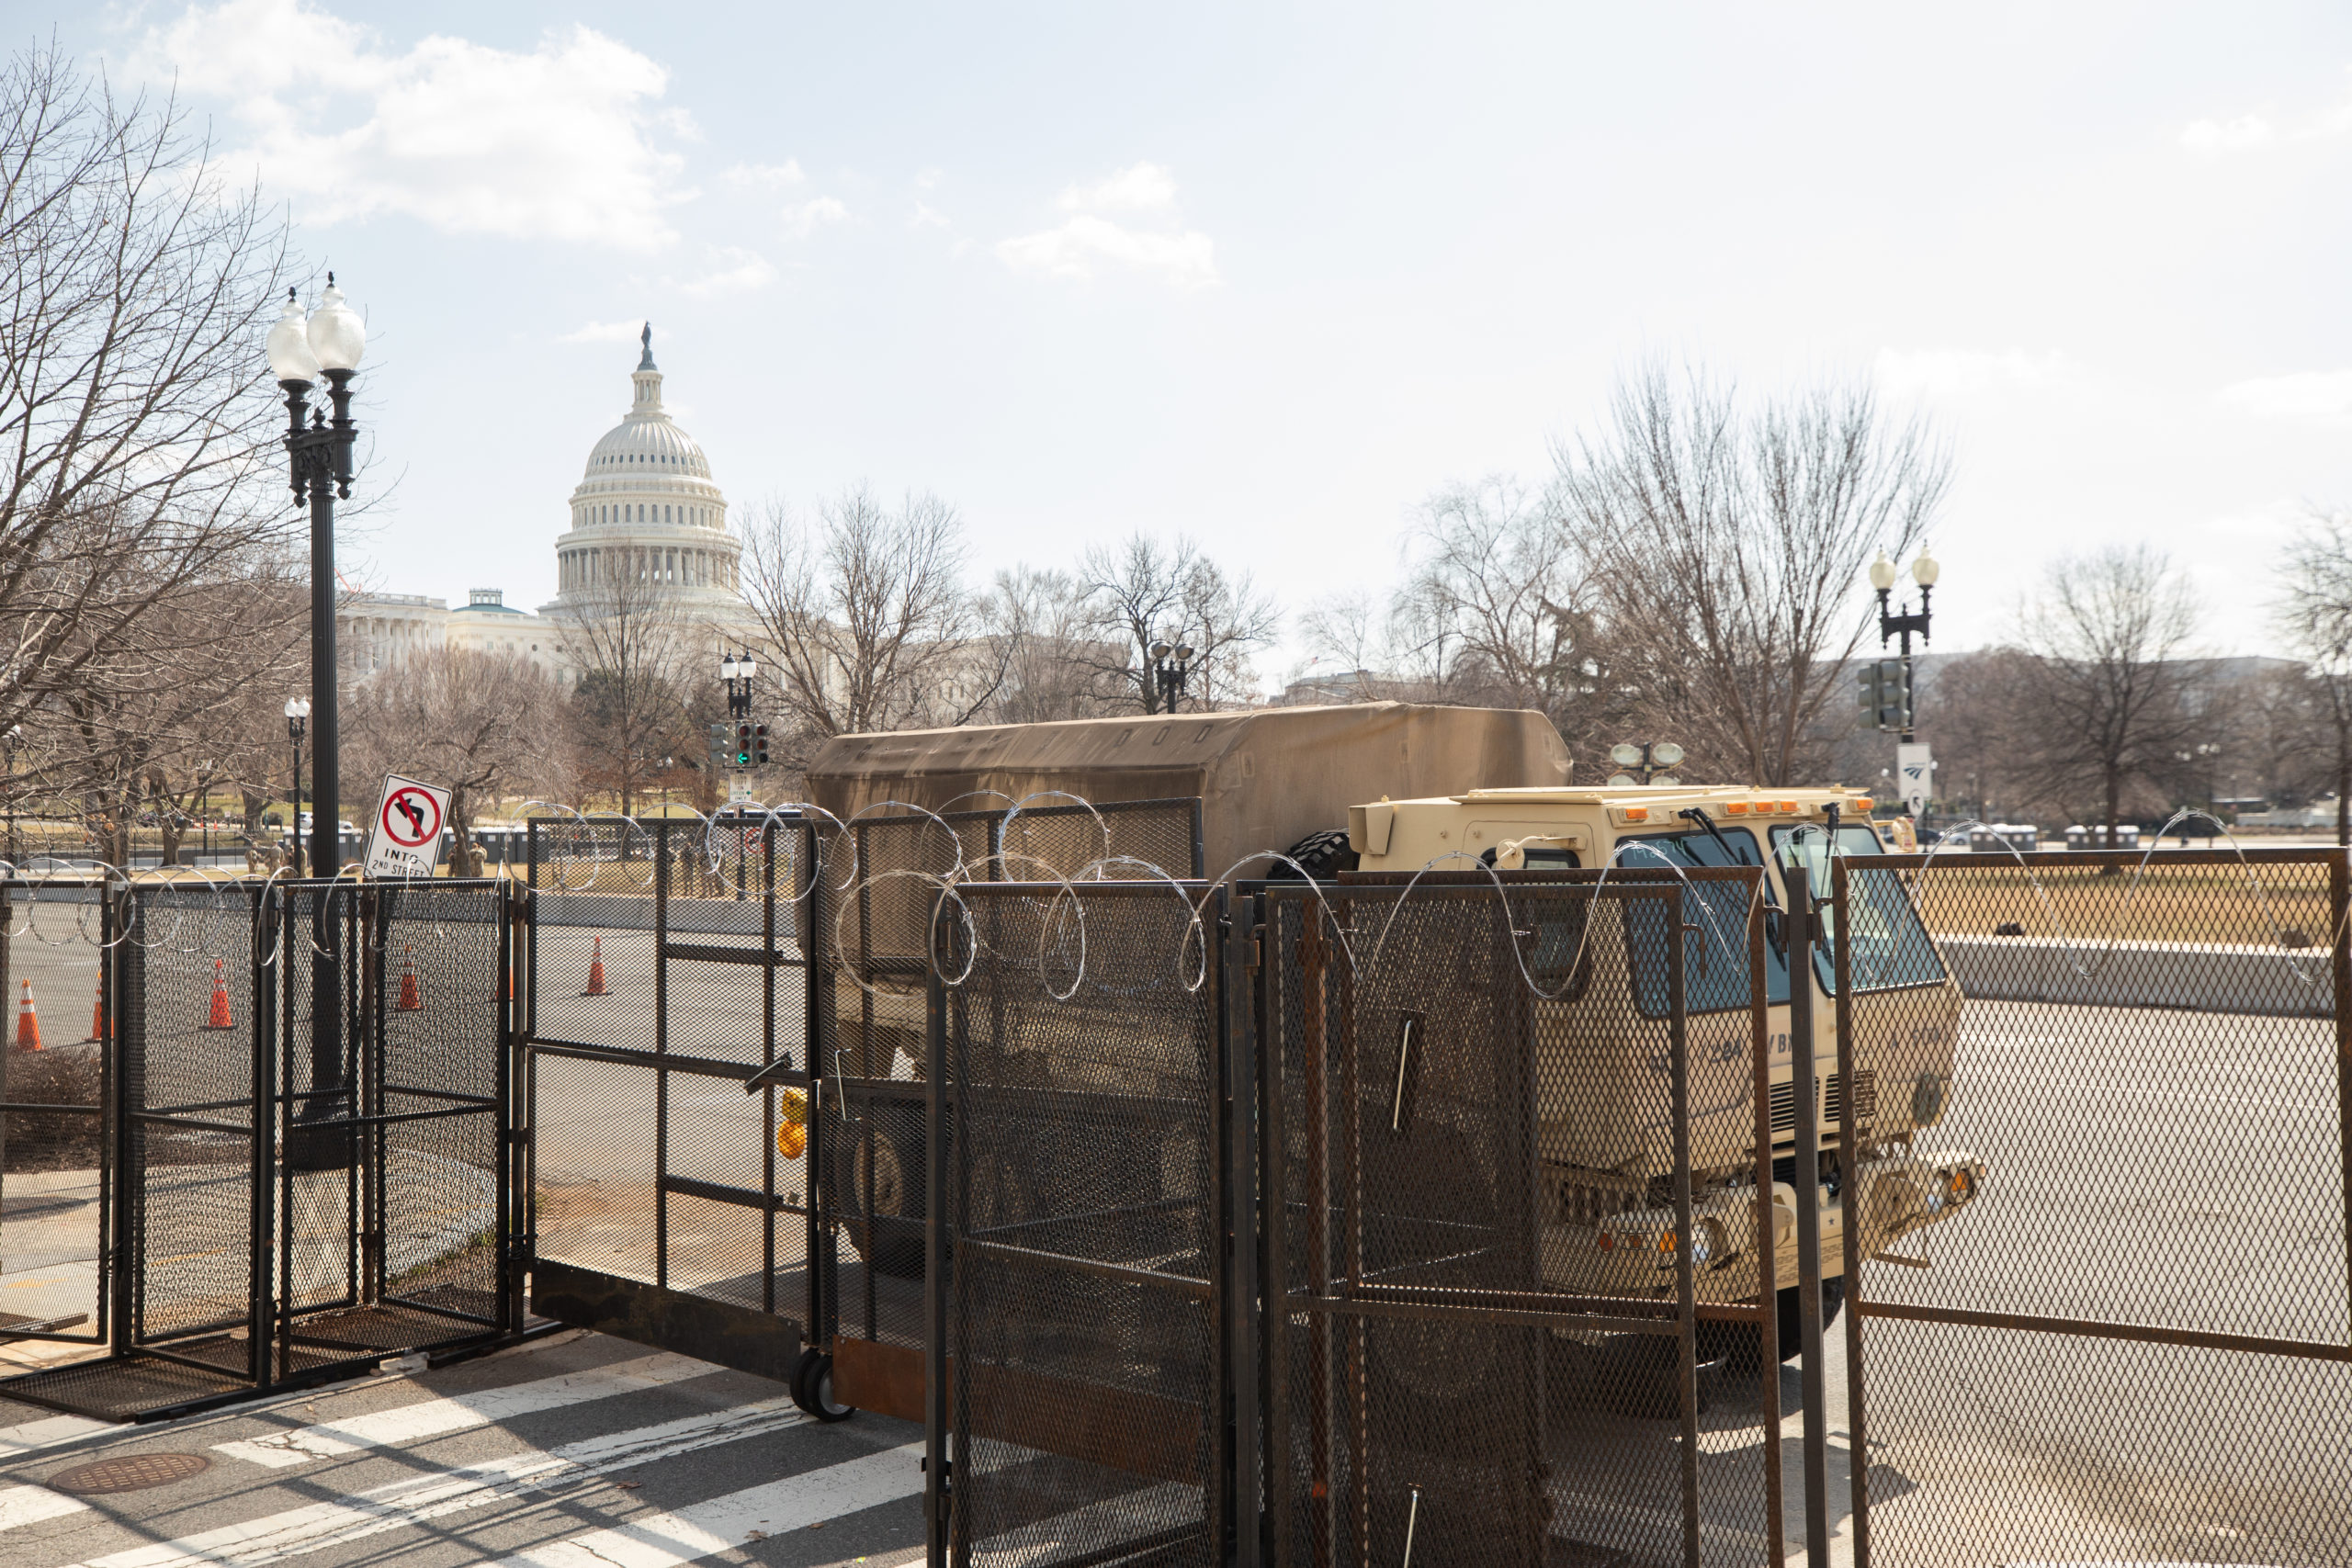 The National Guard maintained a heavy presence after a potential attack by an unnamed militia group was reported by the U.S. Capitol Police in Washington, D.C. on March 4, 2021. (Kaylee Greenlee - Daily Caller News Foundation)